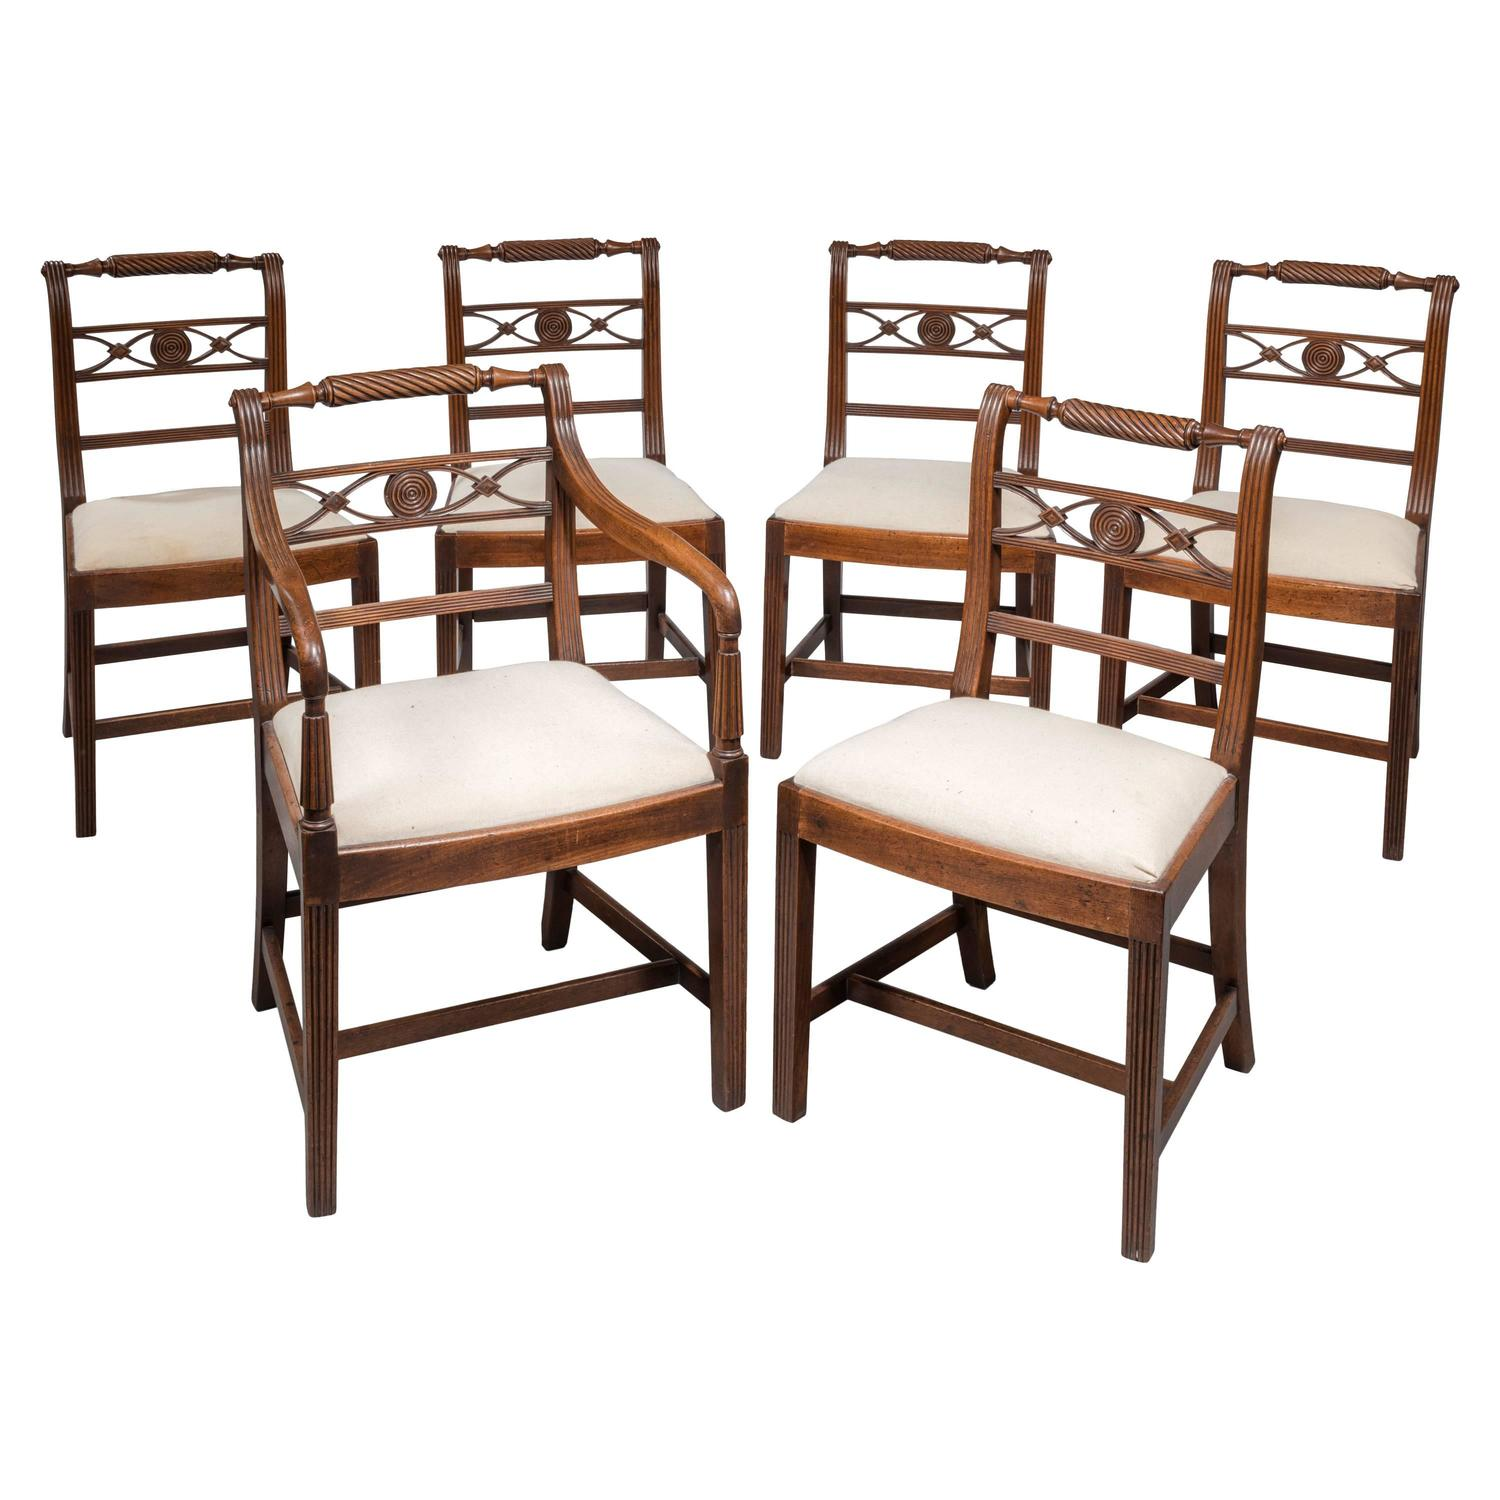 Set of Six Early 19th Century Mahogany Chairs For Sale at  : 5857913z from www.1stdibs.com size 1500 x 1500 jpeg 145kB